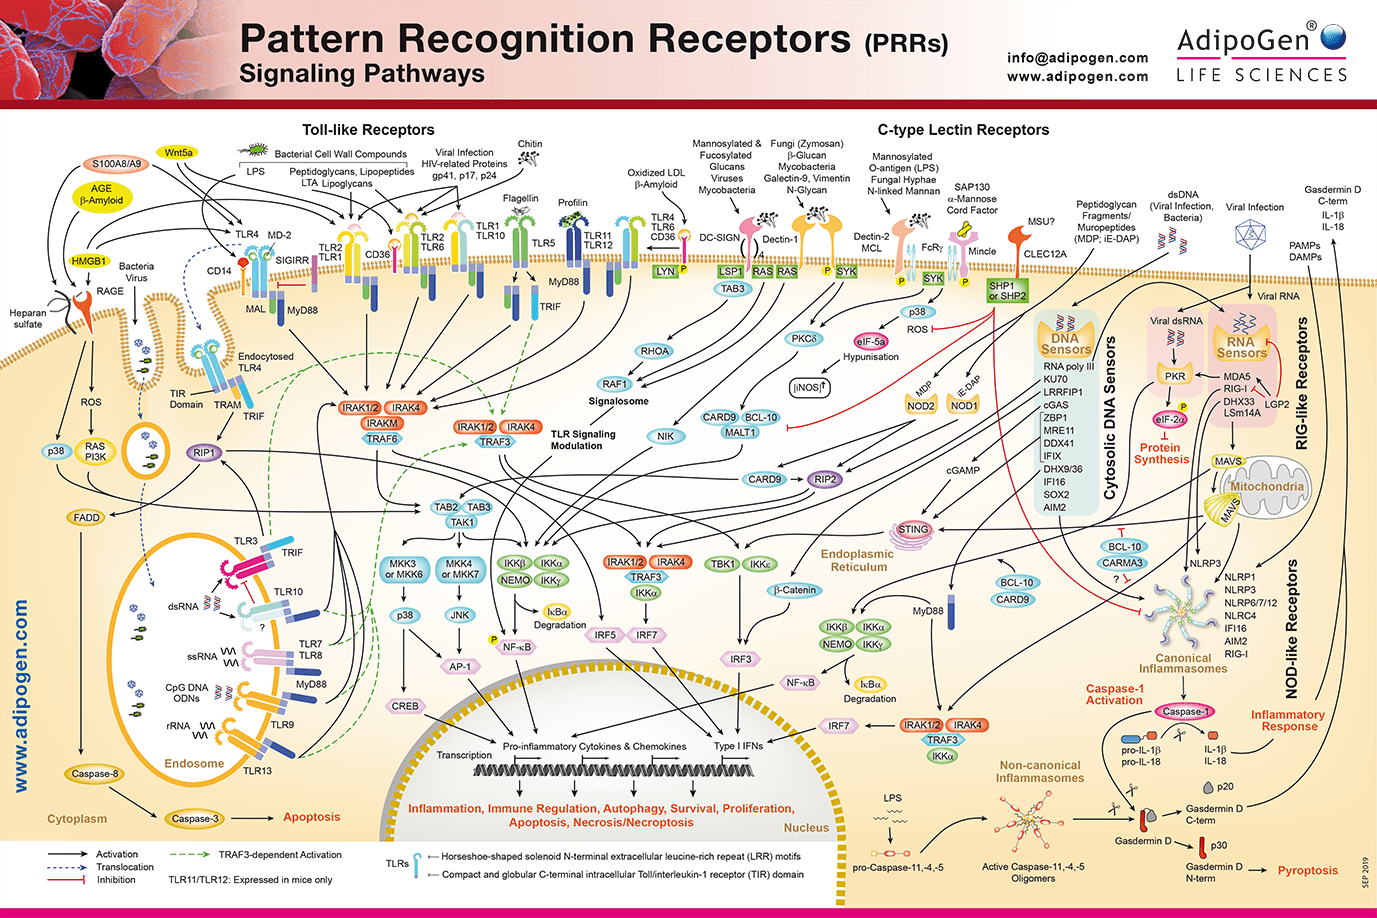 Pattern Recognition Receptors Signaling Wallchart